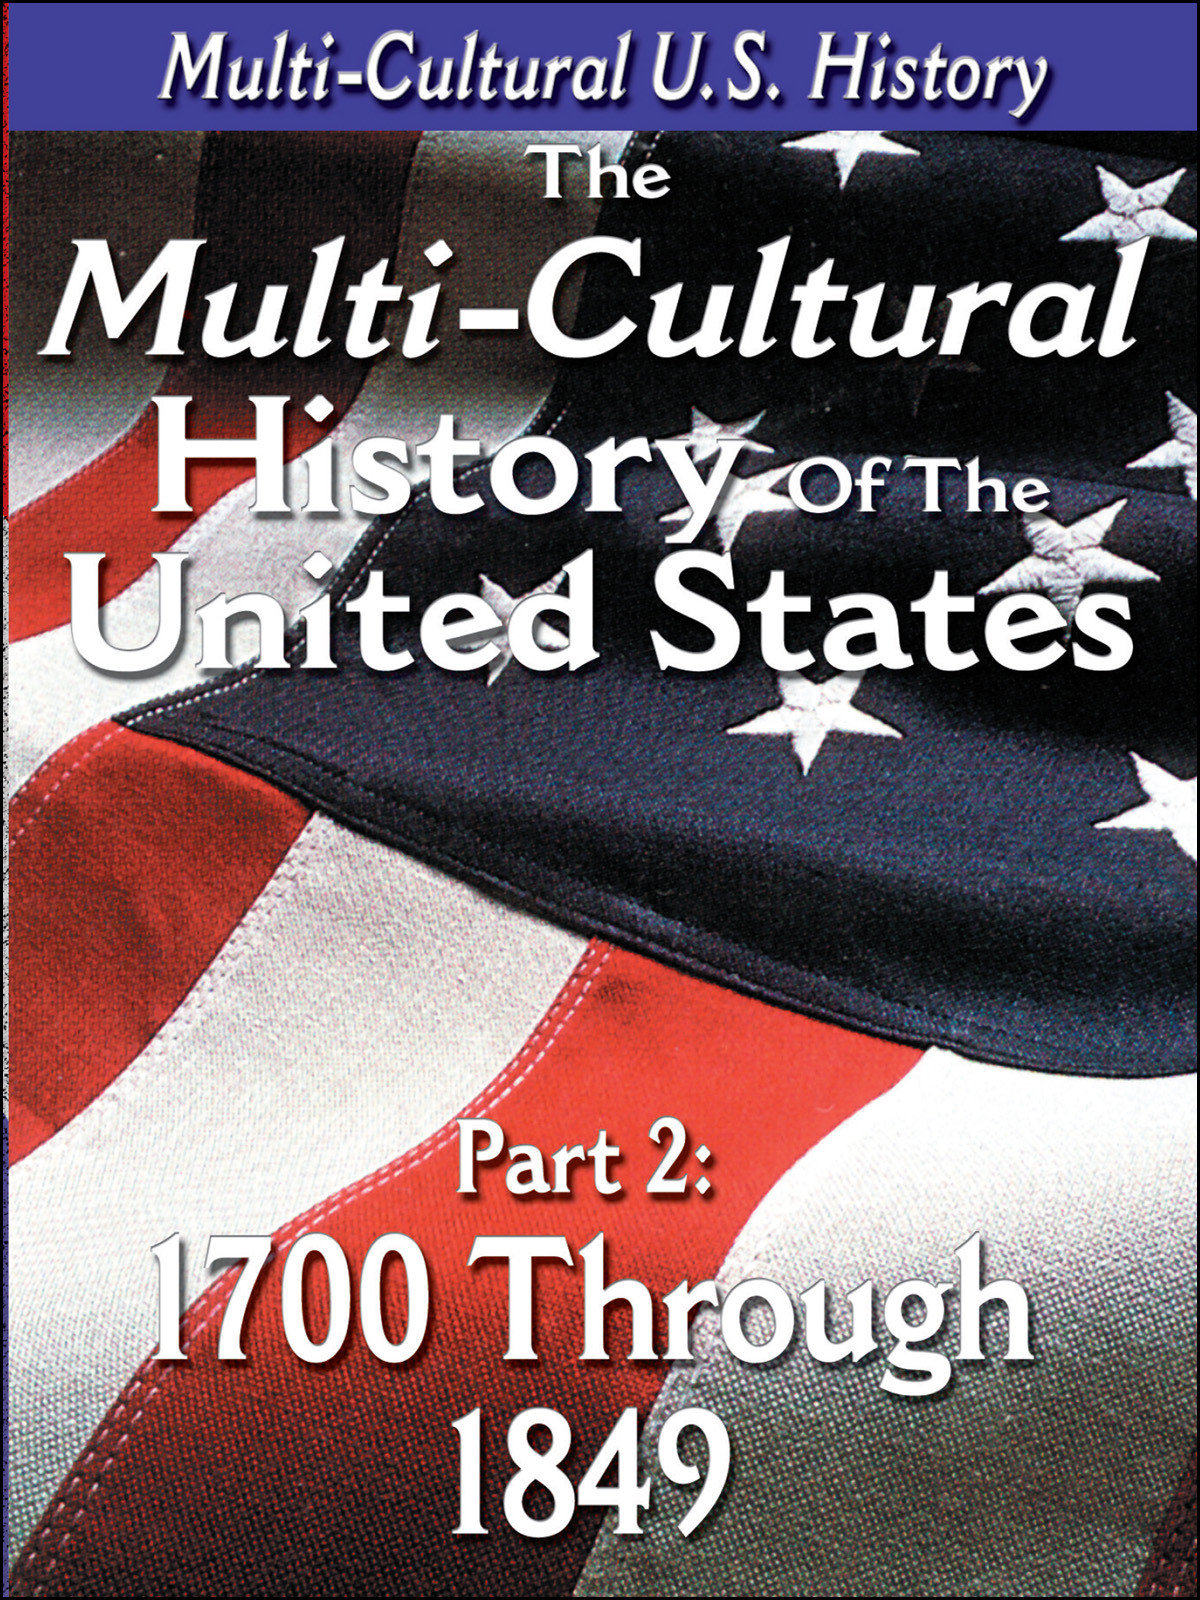 L918 - The History of the United States 1700 through 1849